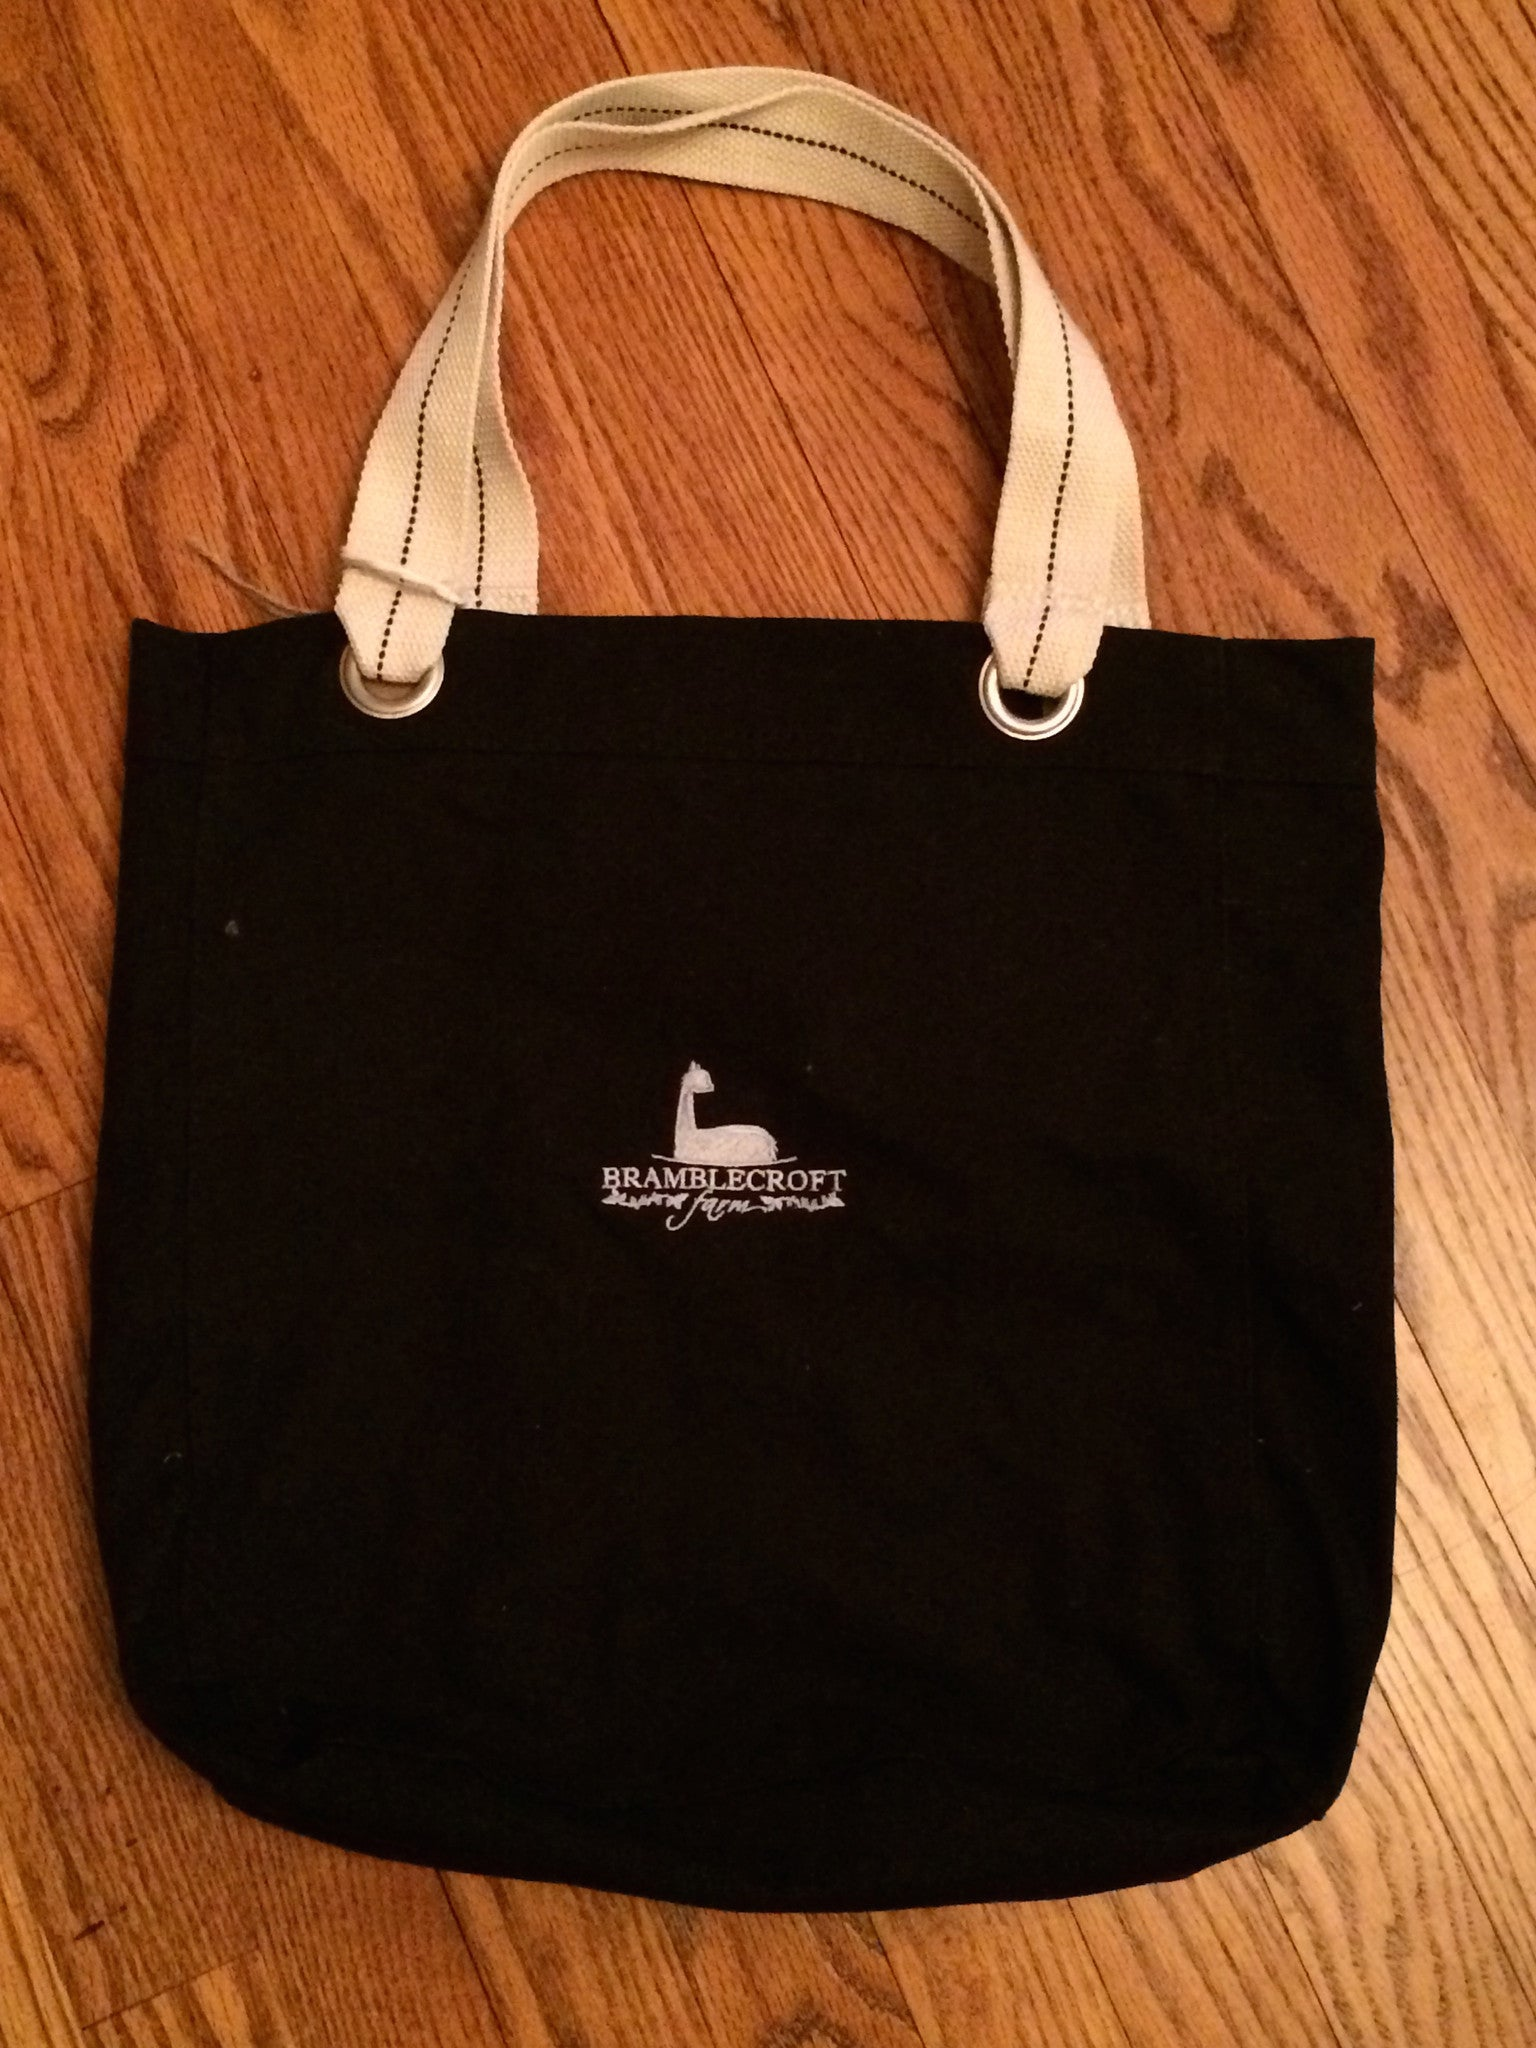 Bramblecroft Farm Tote Bag